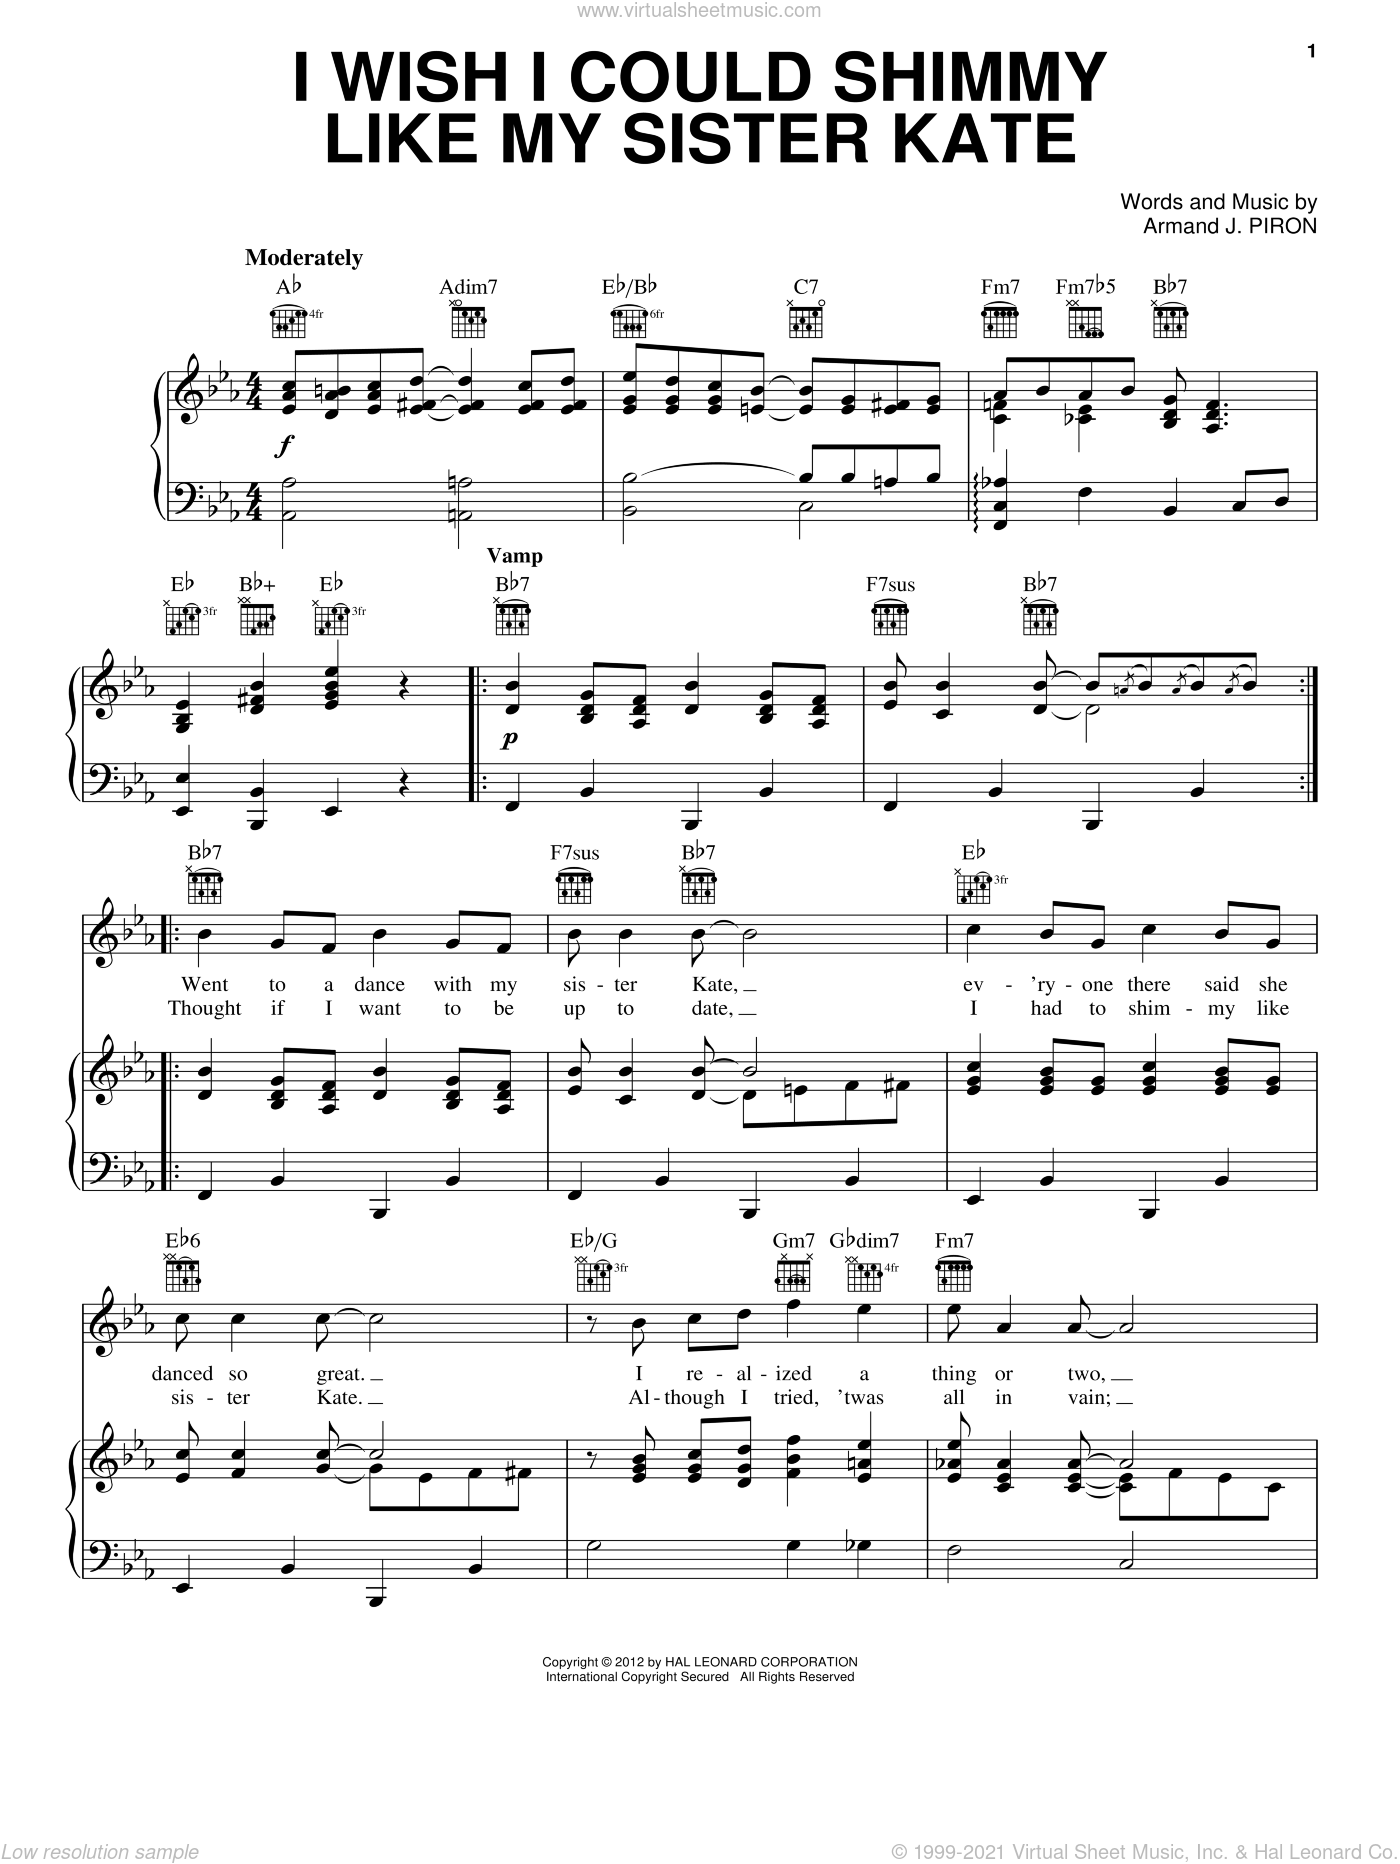 I Wish I Could Shimmy Like My Sister Kate sheet music for voice, piano or guitar by Armand Piron. Score Image Preview.